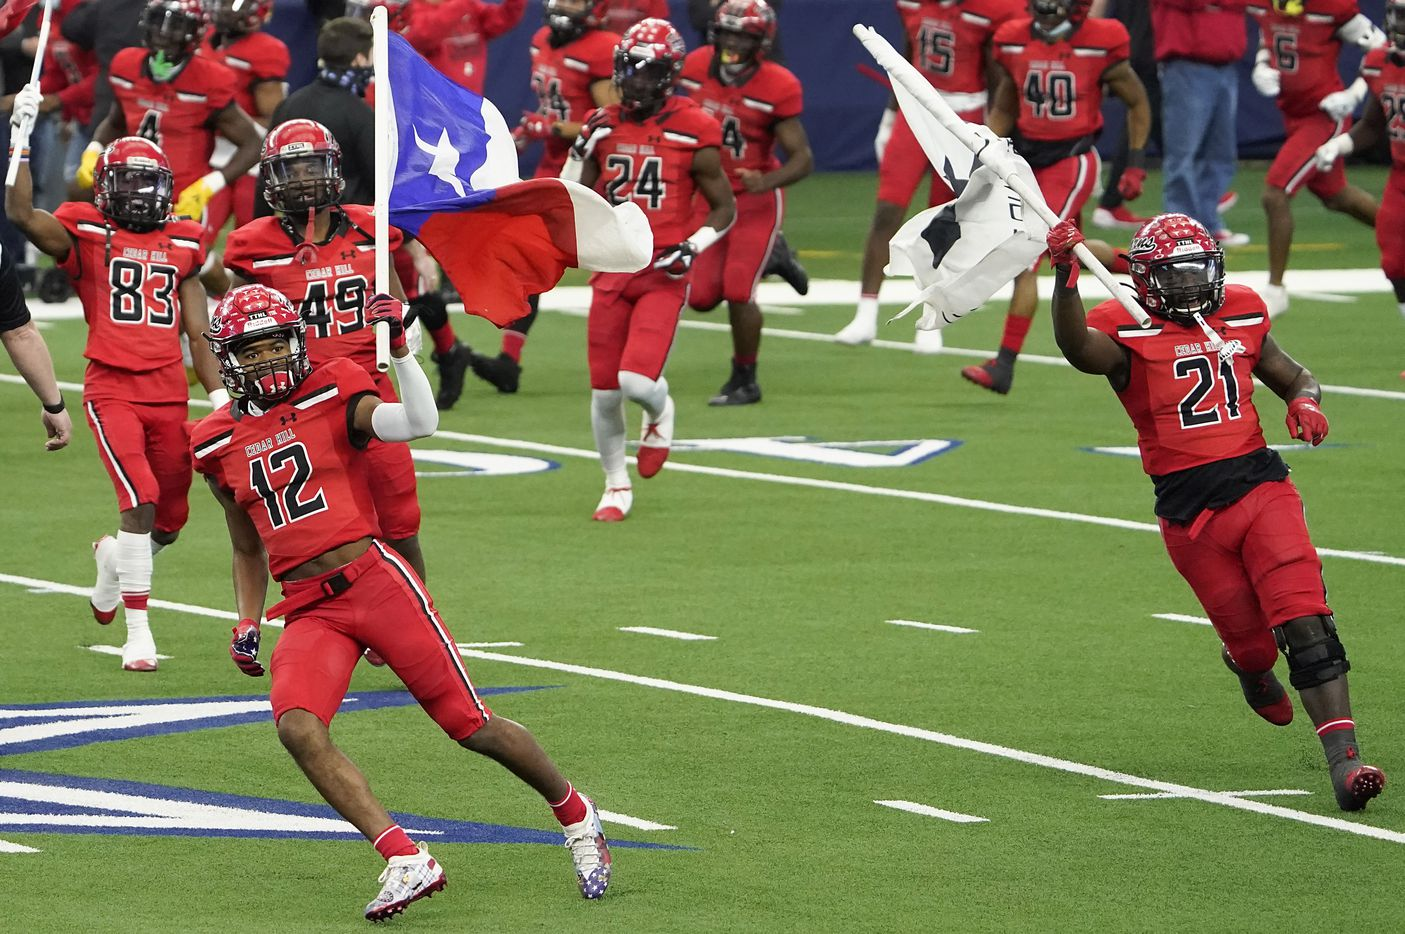 Cedar Hill's Brian Rainey (12) and Kris Allen (21) carry flags as they lead their team on to the field to face Katy in Class 6A Division II state football championship  game at AT&T Stadium on Saturday, Jan. 16, 2021, in Arlington, Texas.